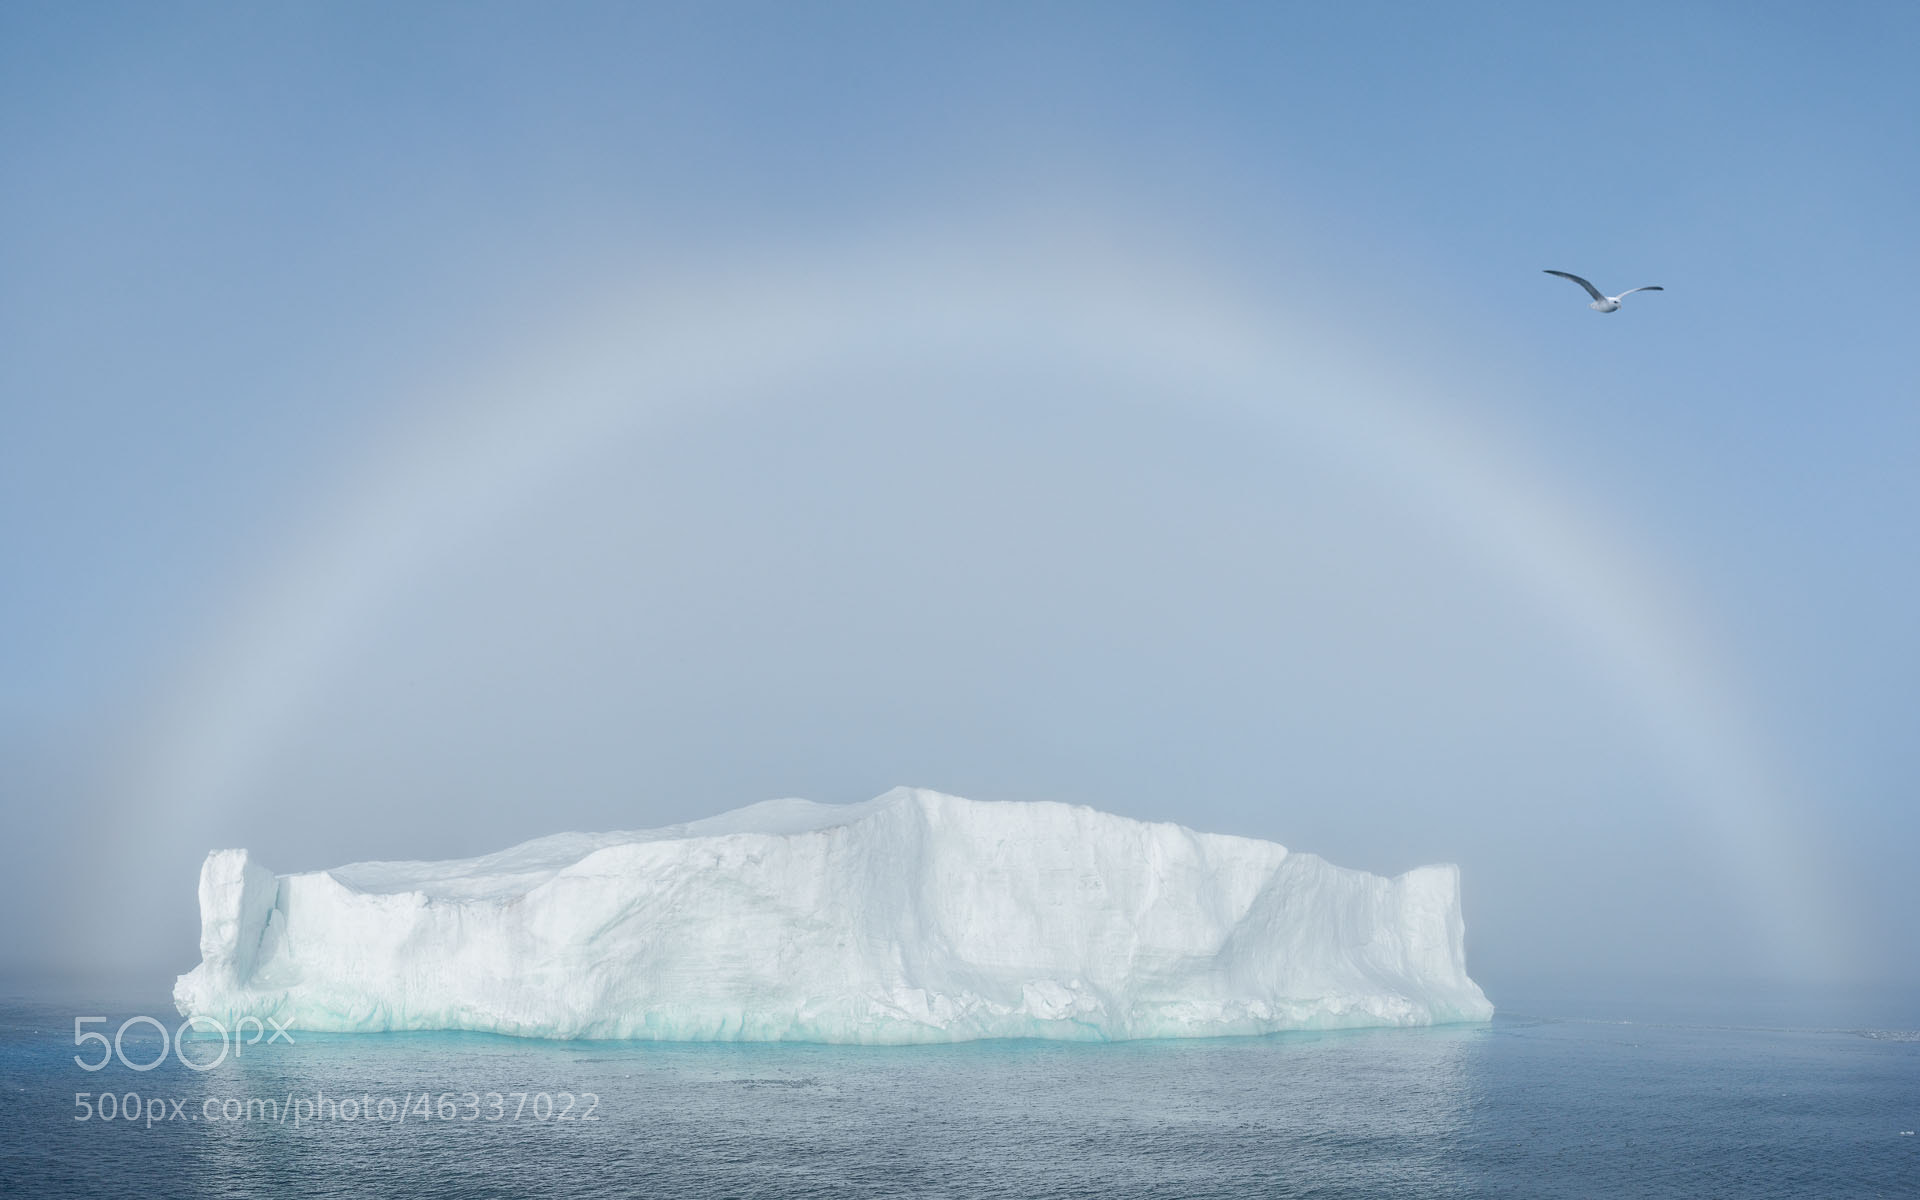 Photograph High Arctic in High Key by Mike Reyfman on 500px